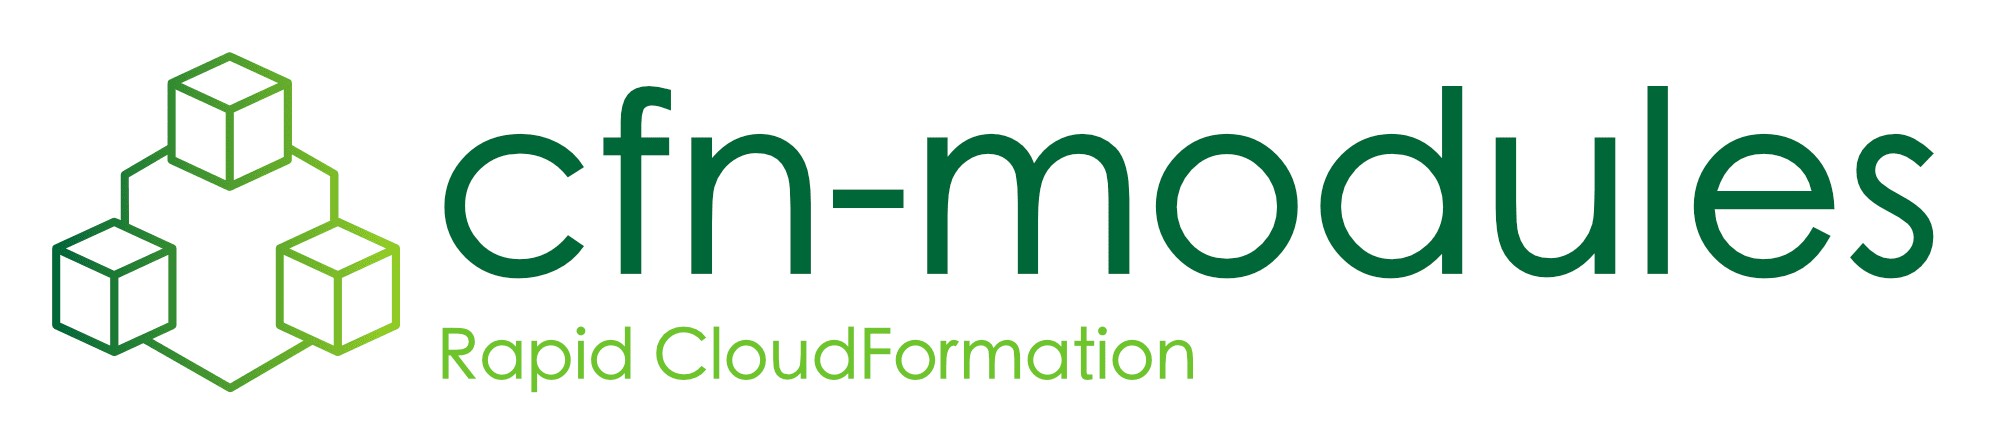 Rapid CloudFormation: cfn-modules